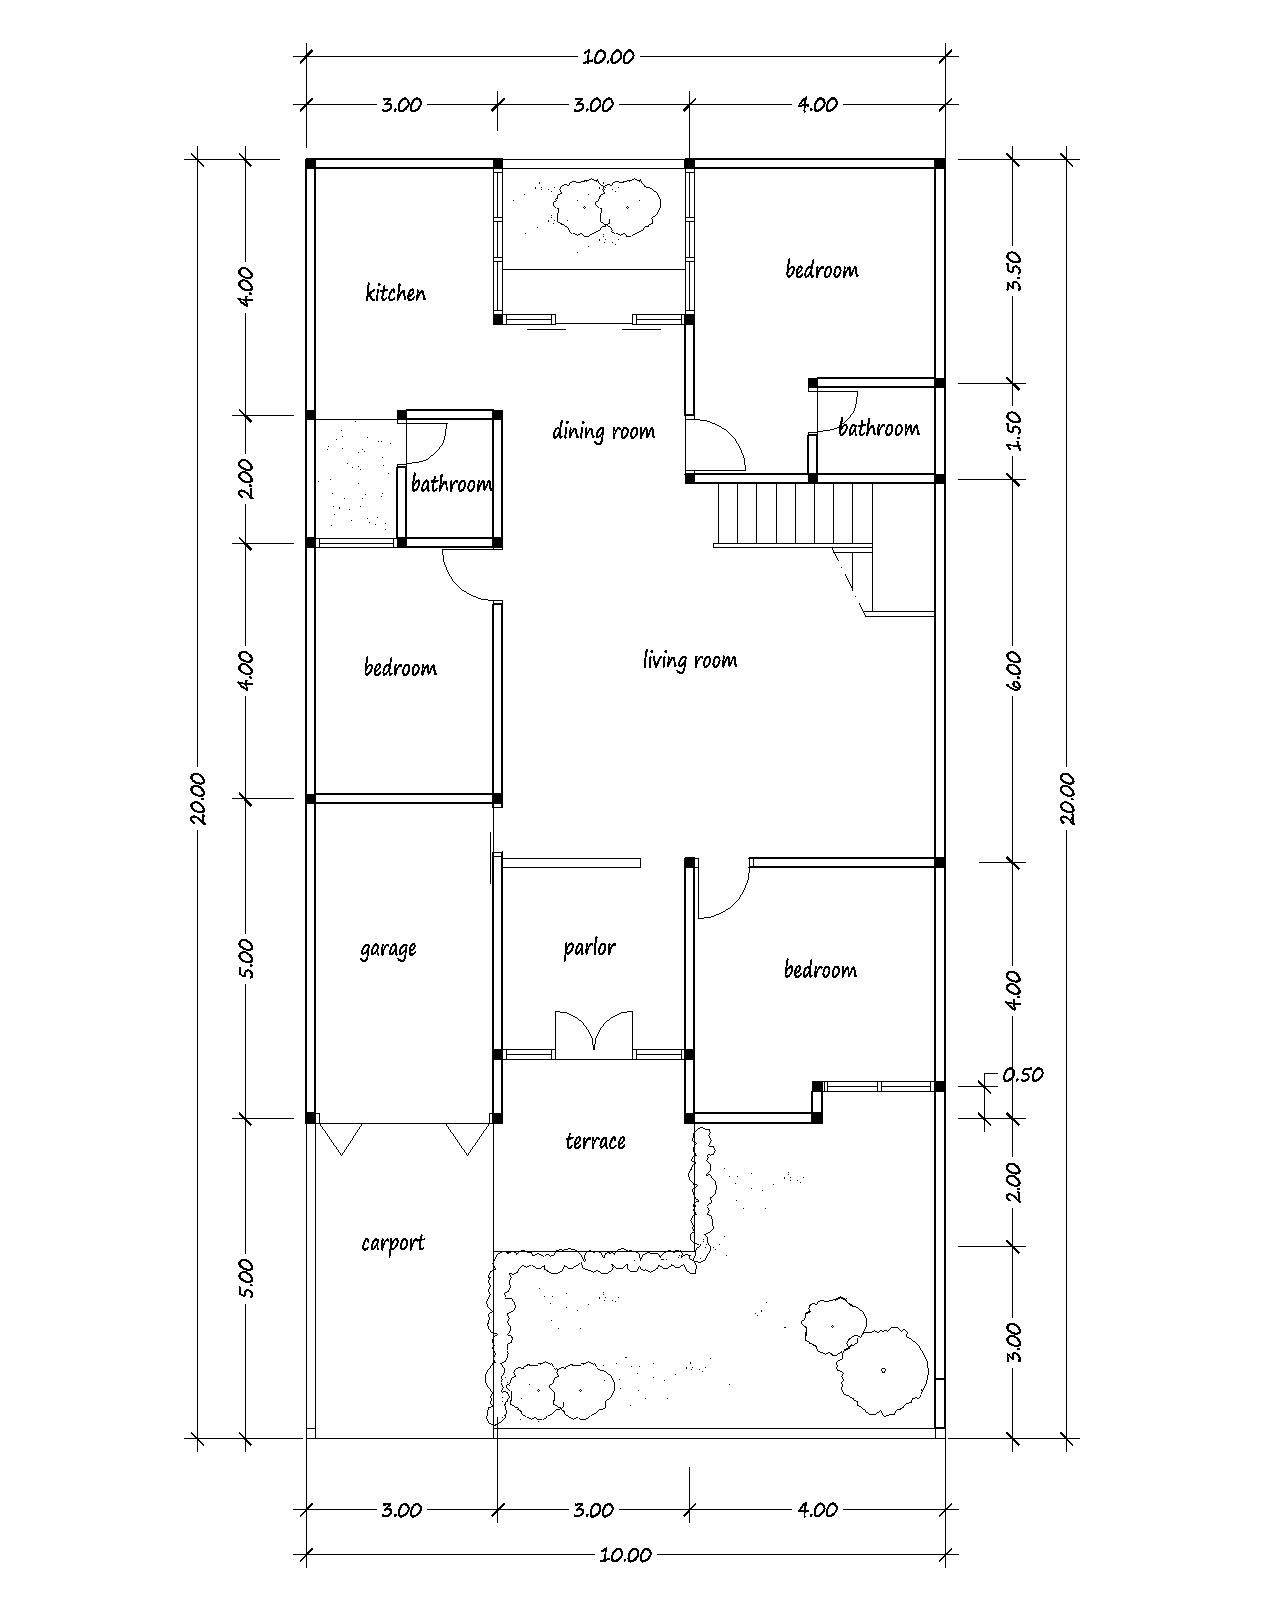 Home Design Plans Video: Plans, Image, Design And About House